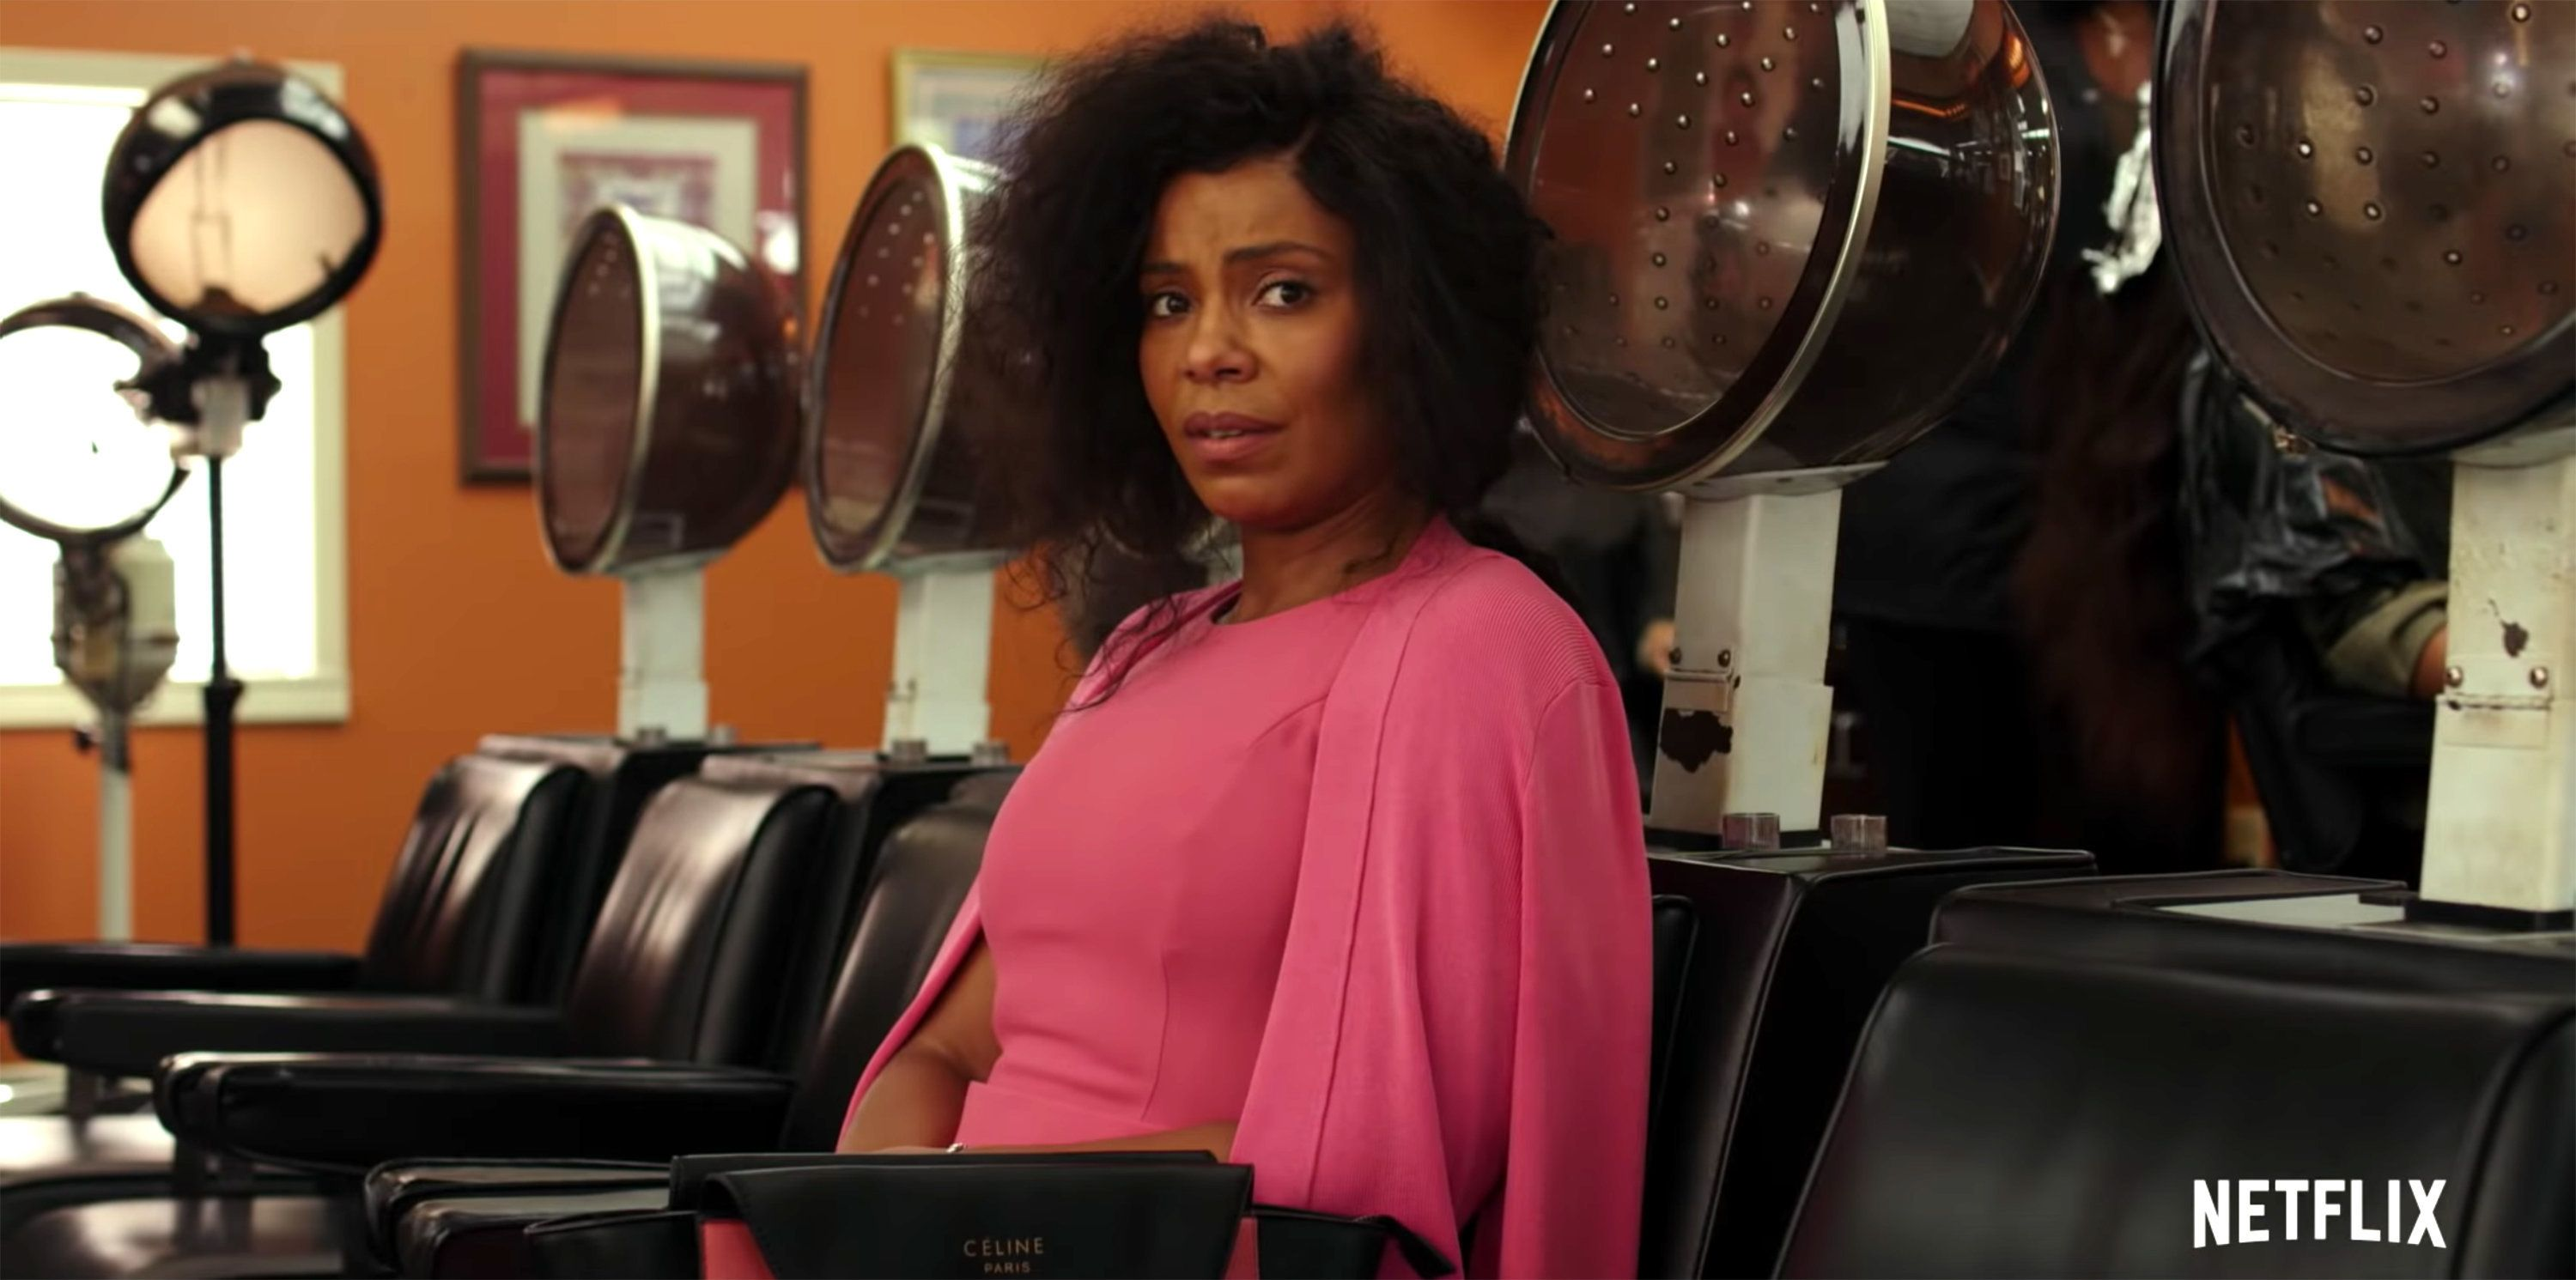 NEW GROUND: Netflix's 'Nappily Ever After' Breaks New Ground For Black Women In Rom